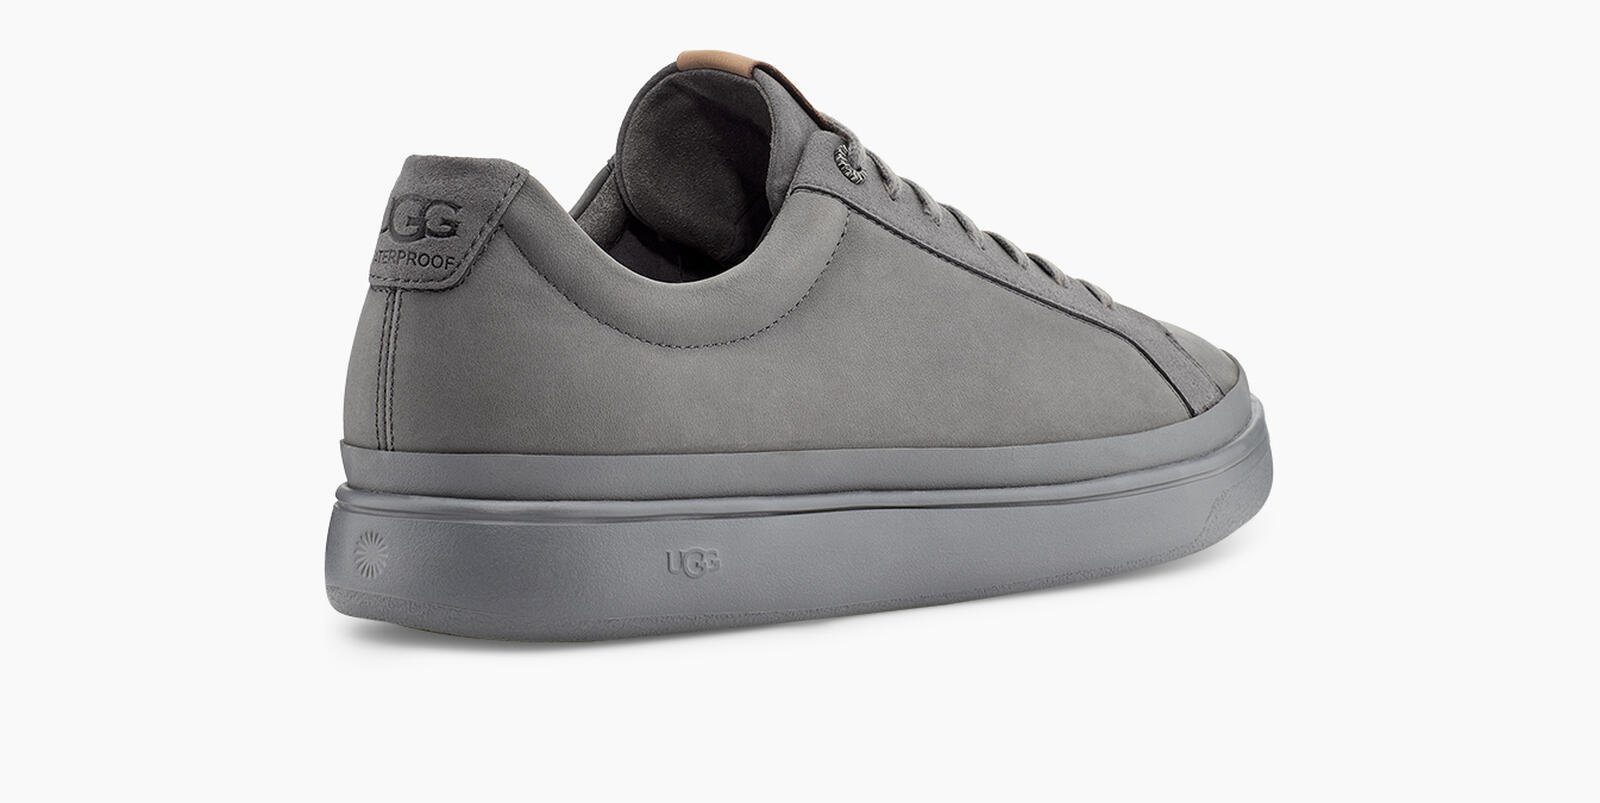 Cali Low Waterproof Sneaker